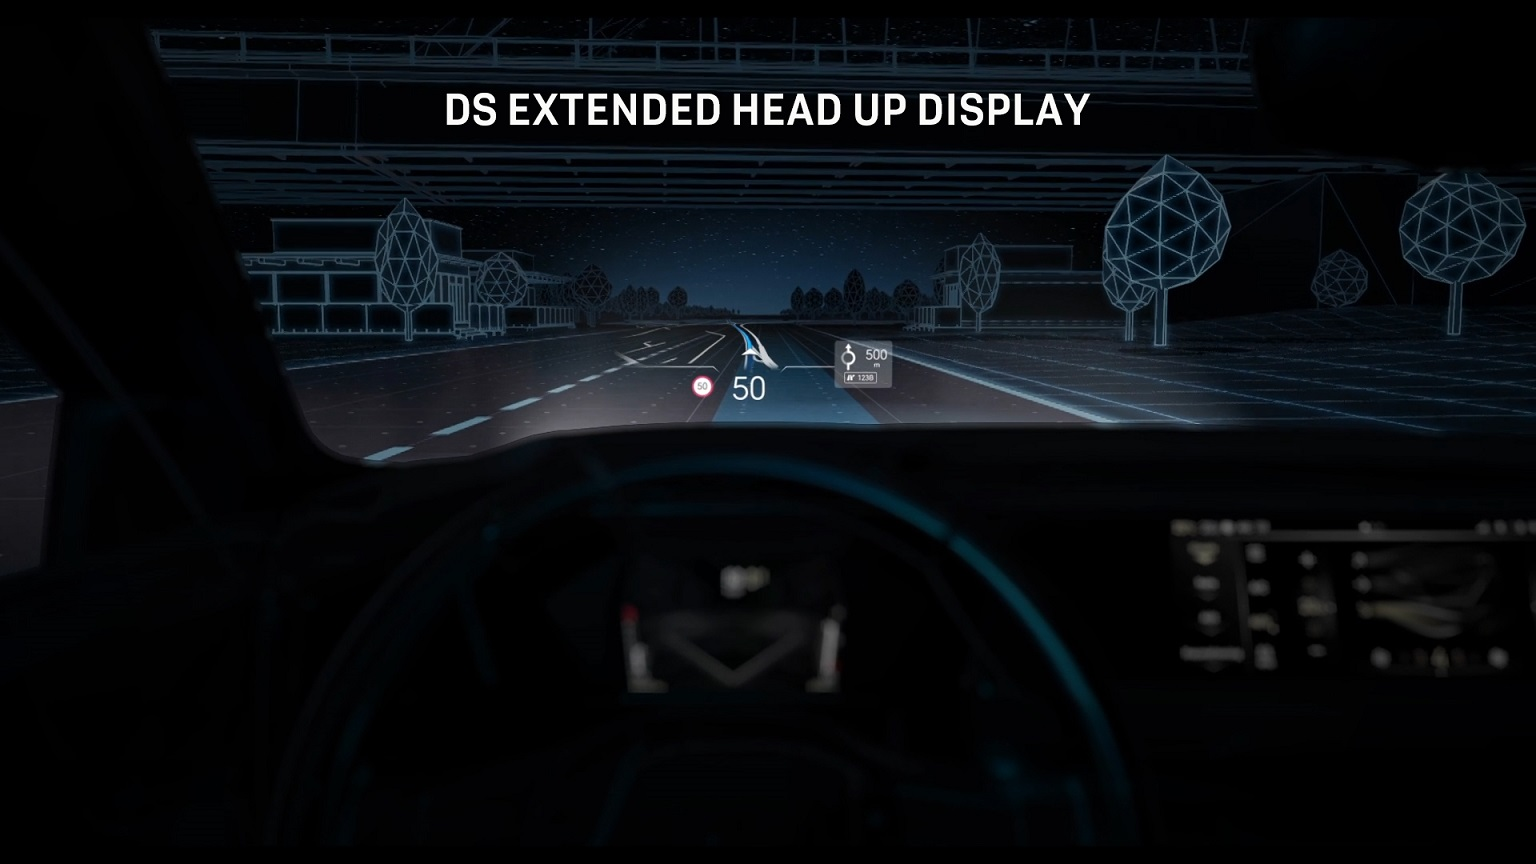 ds_extended_head_up_display.jpg